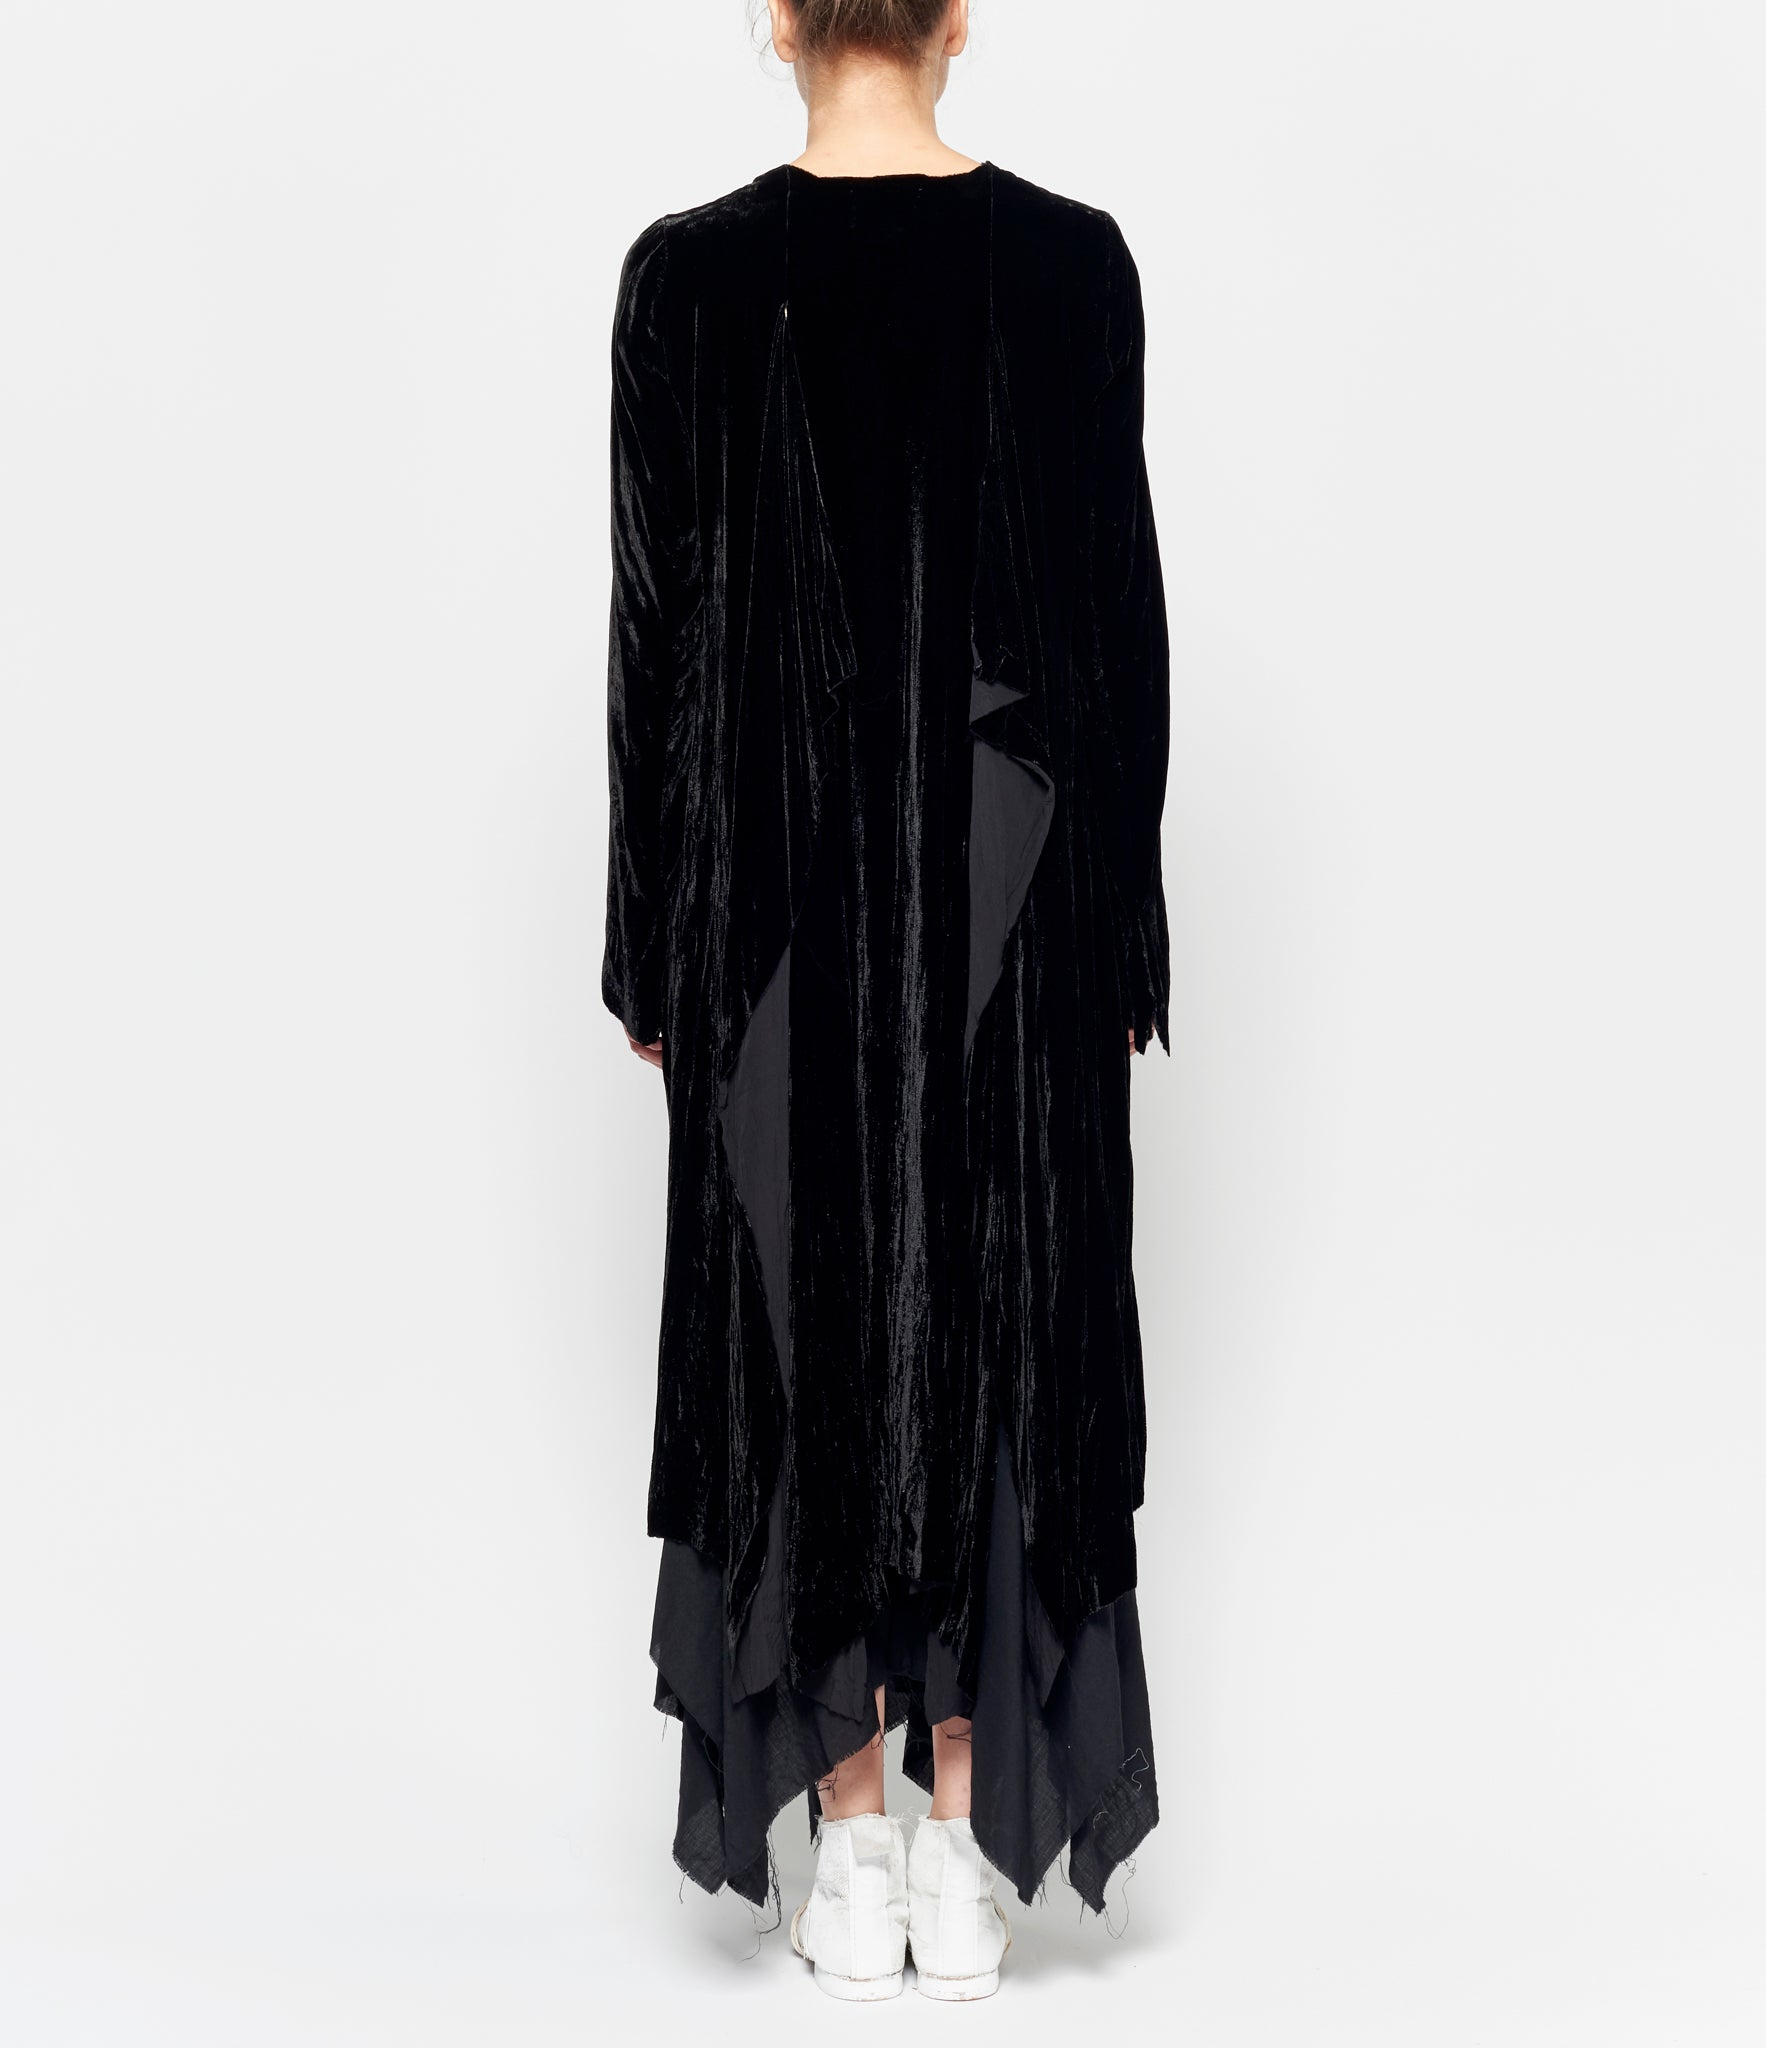 Elena Dawson Black Silk Velvet Cape Coat